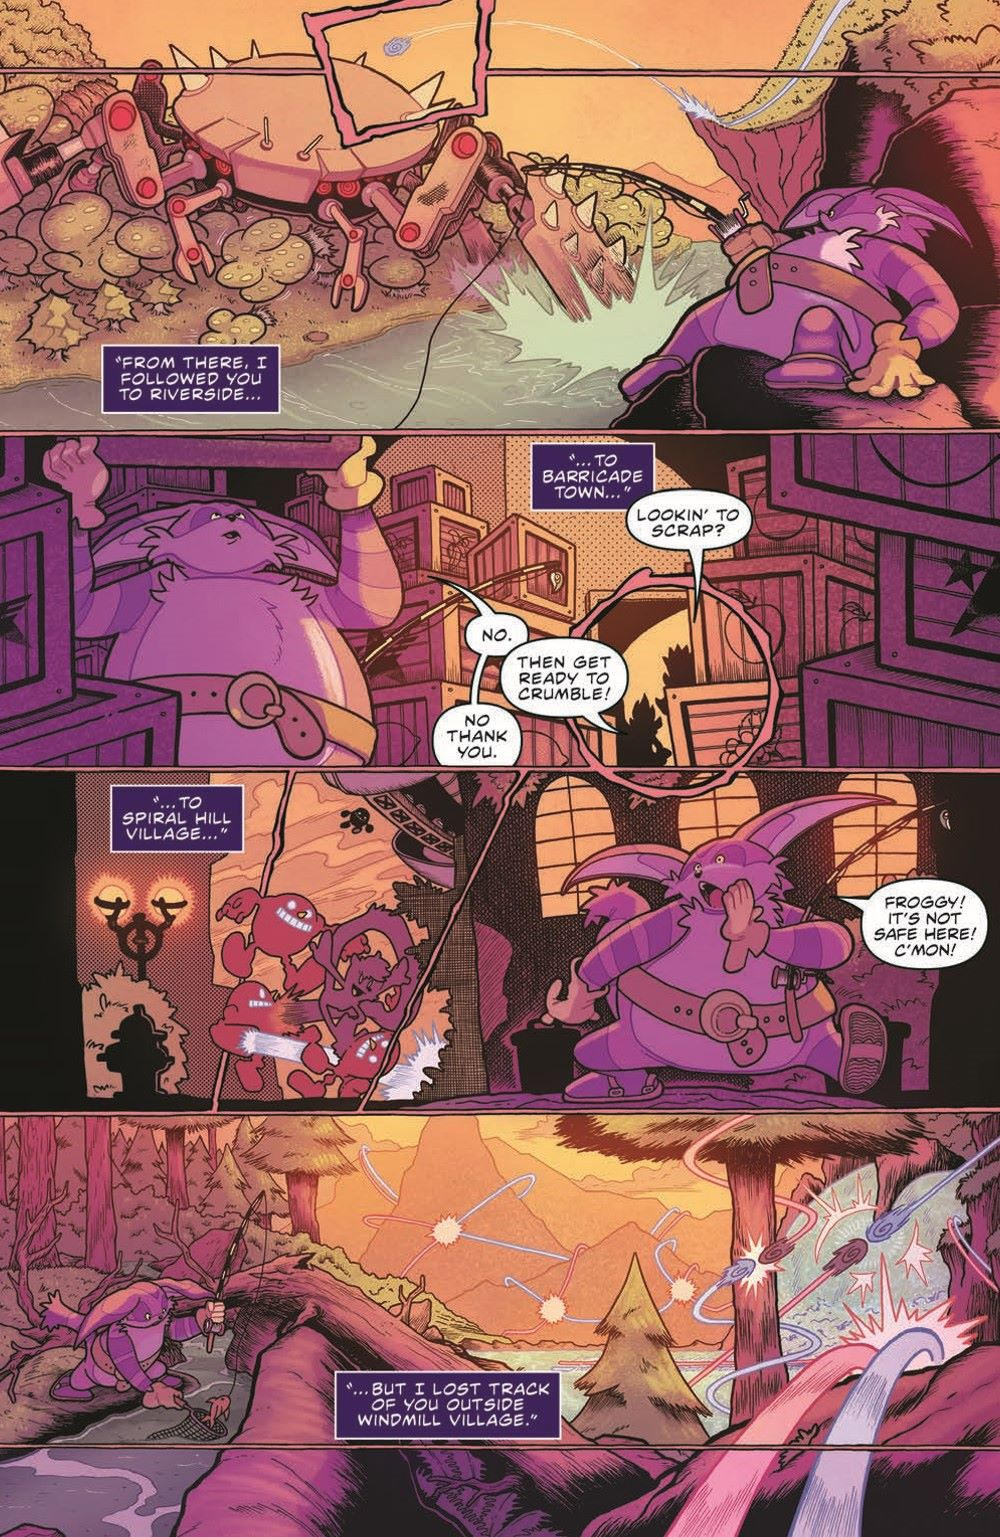 Sonic_V08_TPB_pr-6 ComicList Previews: SONIC THE HEDGEHOG VOLUME 8 OUT OF THE BLUE TP